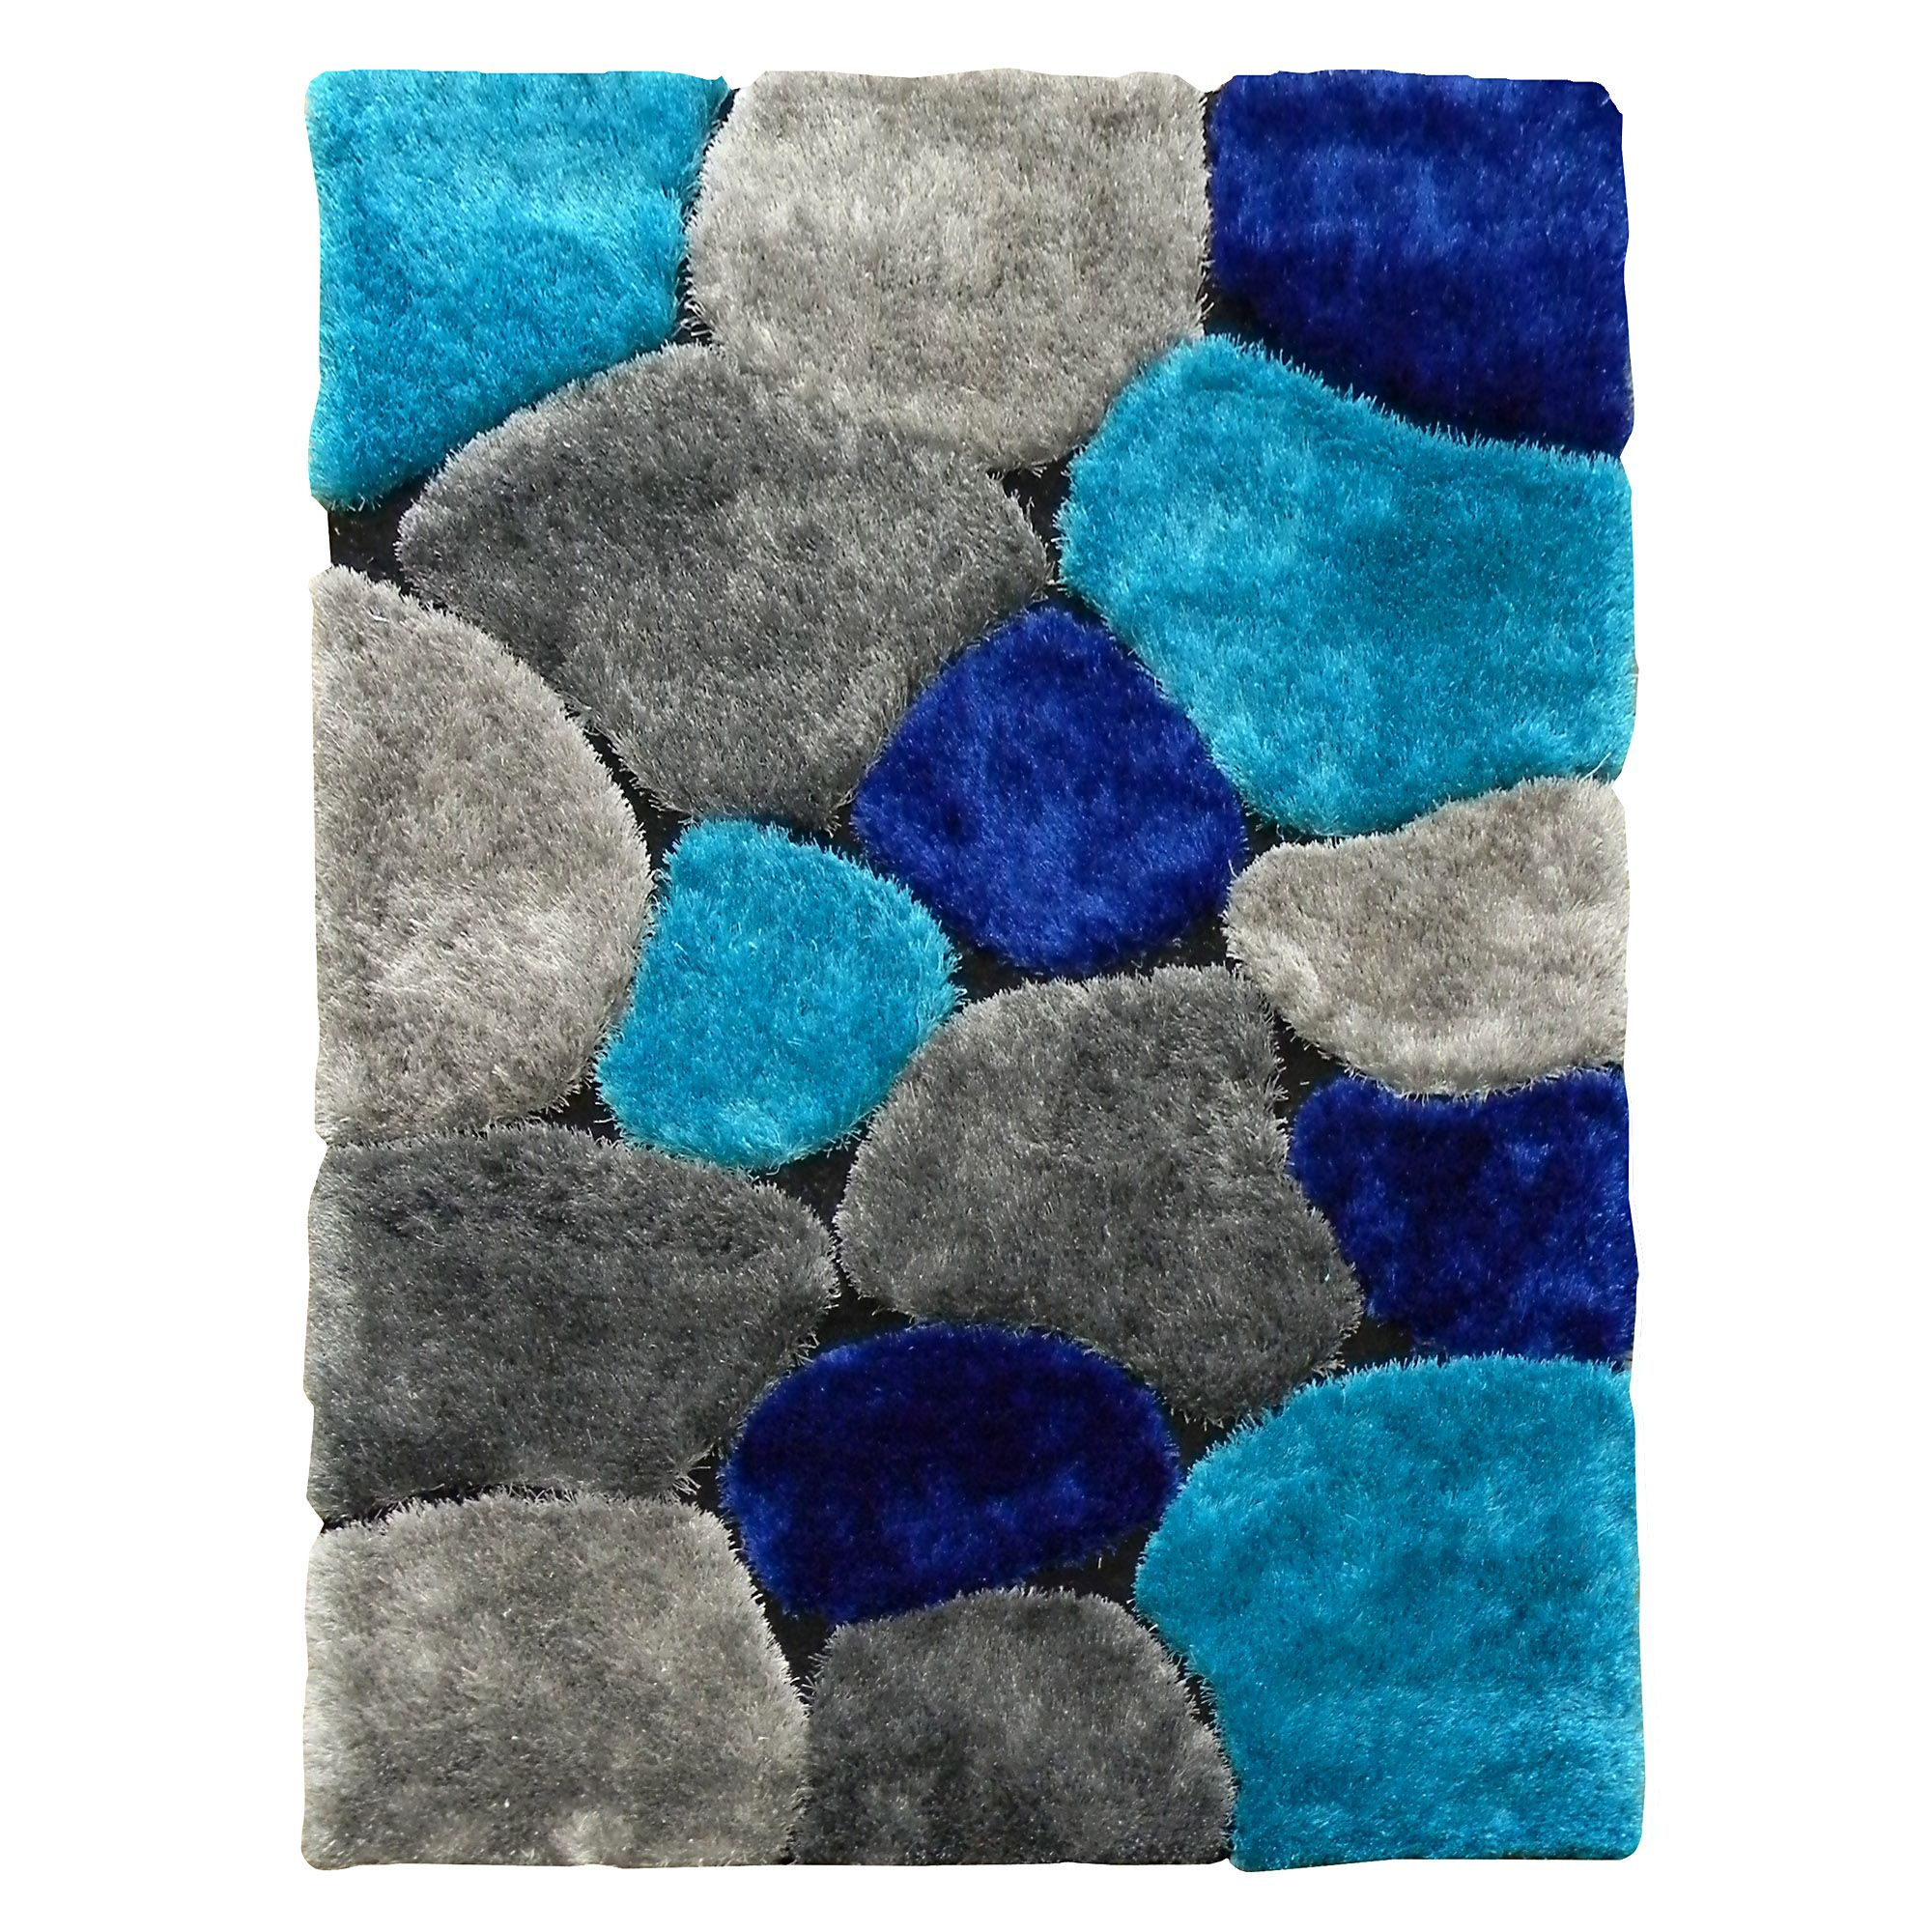 Blue Shag Rug Hand Tufted Flash Shaggy 658 Abstract Color Block Blue